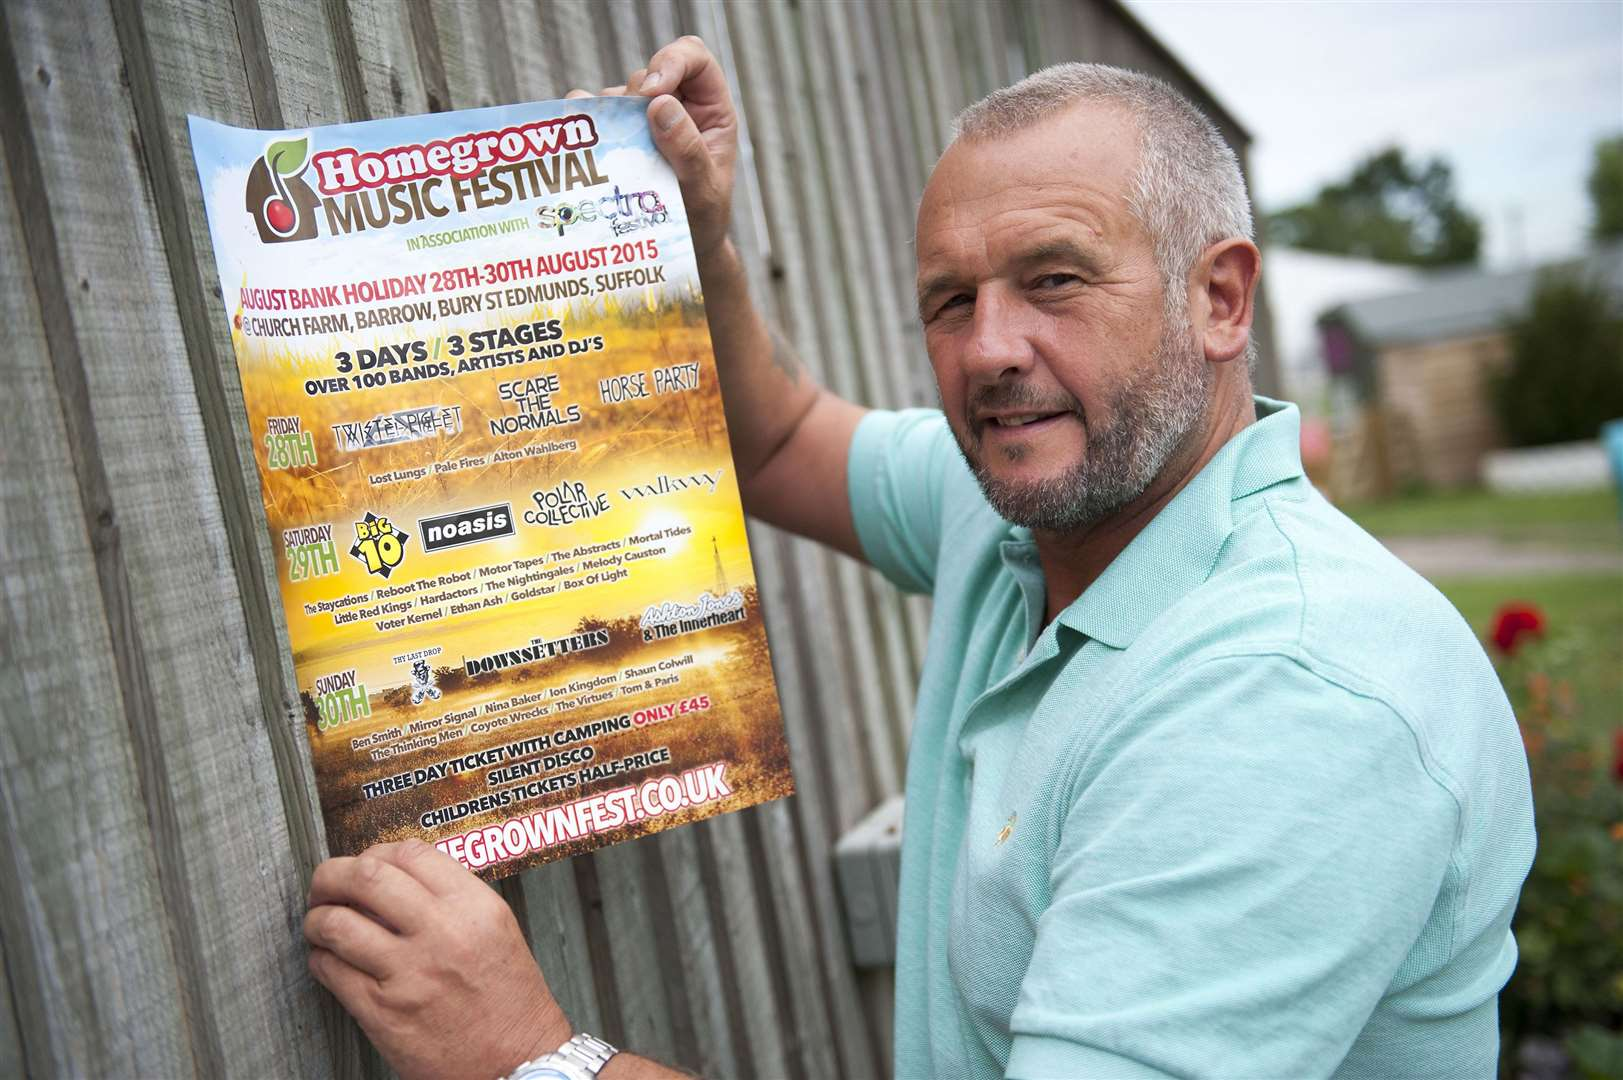 Homegrown Festival organiser.Church Farm, Church Road,Barrow.Glen Moulds, founder of the Homegrown (music) Festival in advance of this year's festival that takes place on August Bank Holiday weekend..Picture Mark Westley. (14521326)